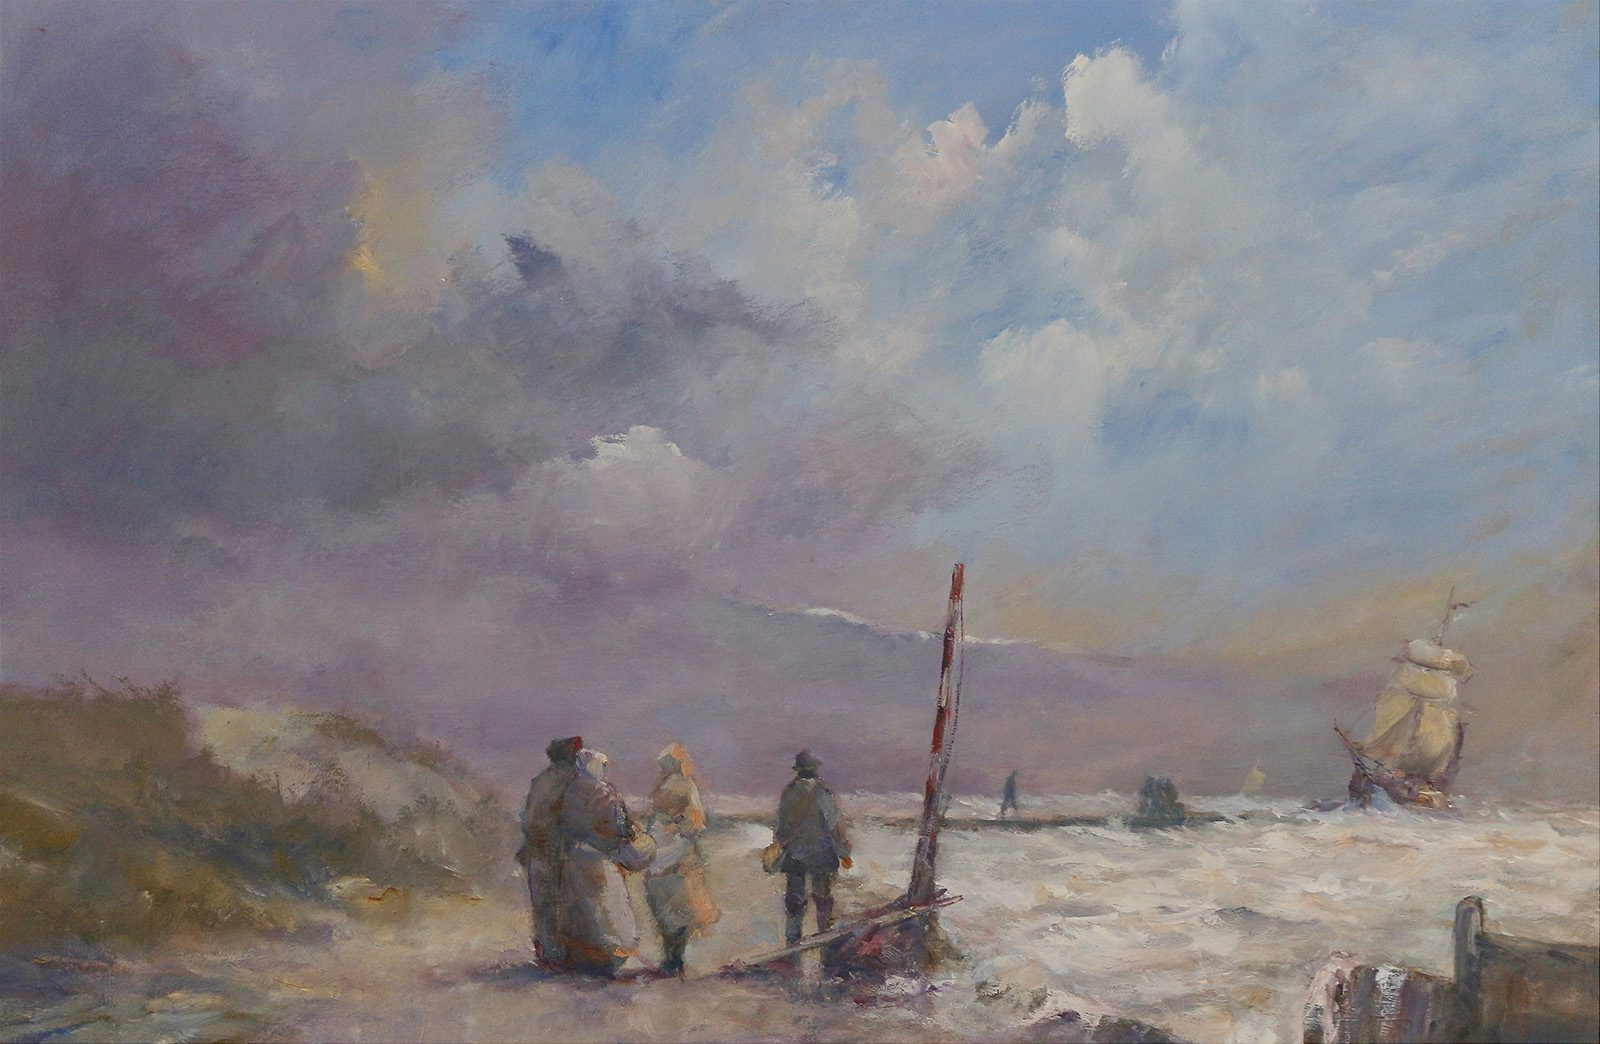 Romantic marine painting of working folk by the sea by Stewart Taylor